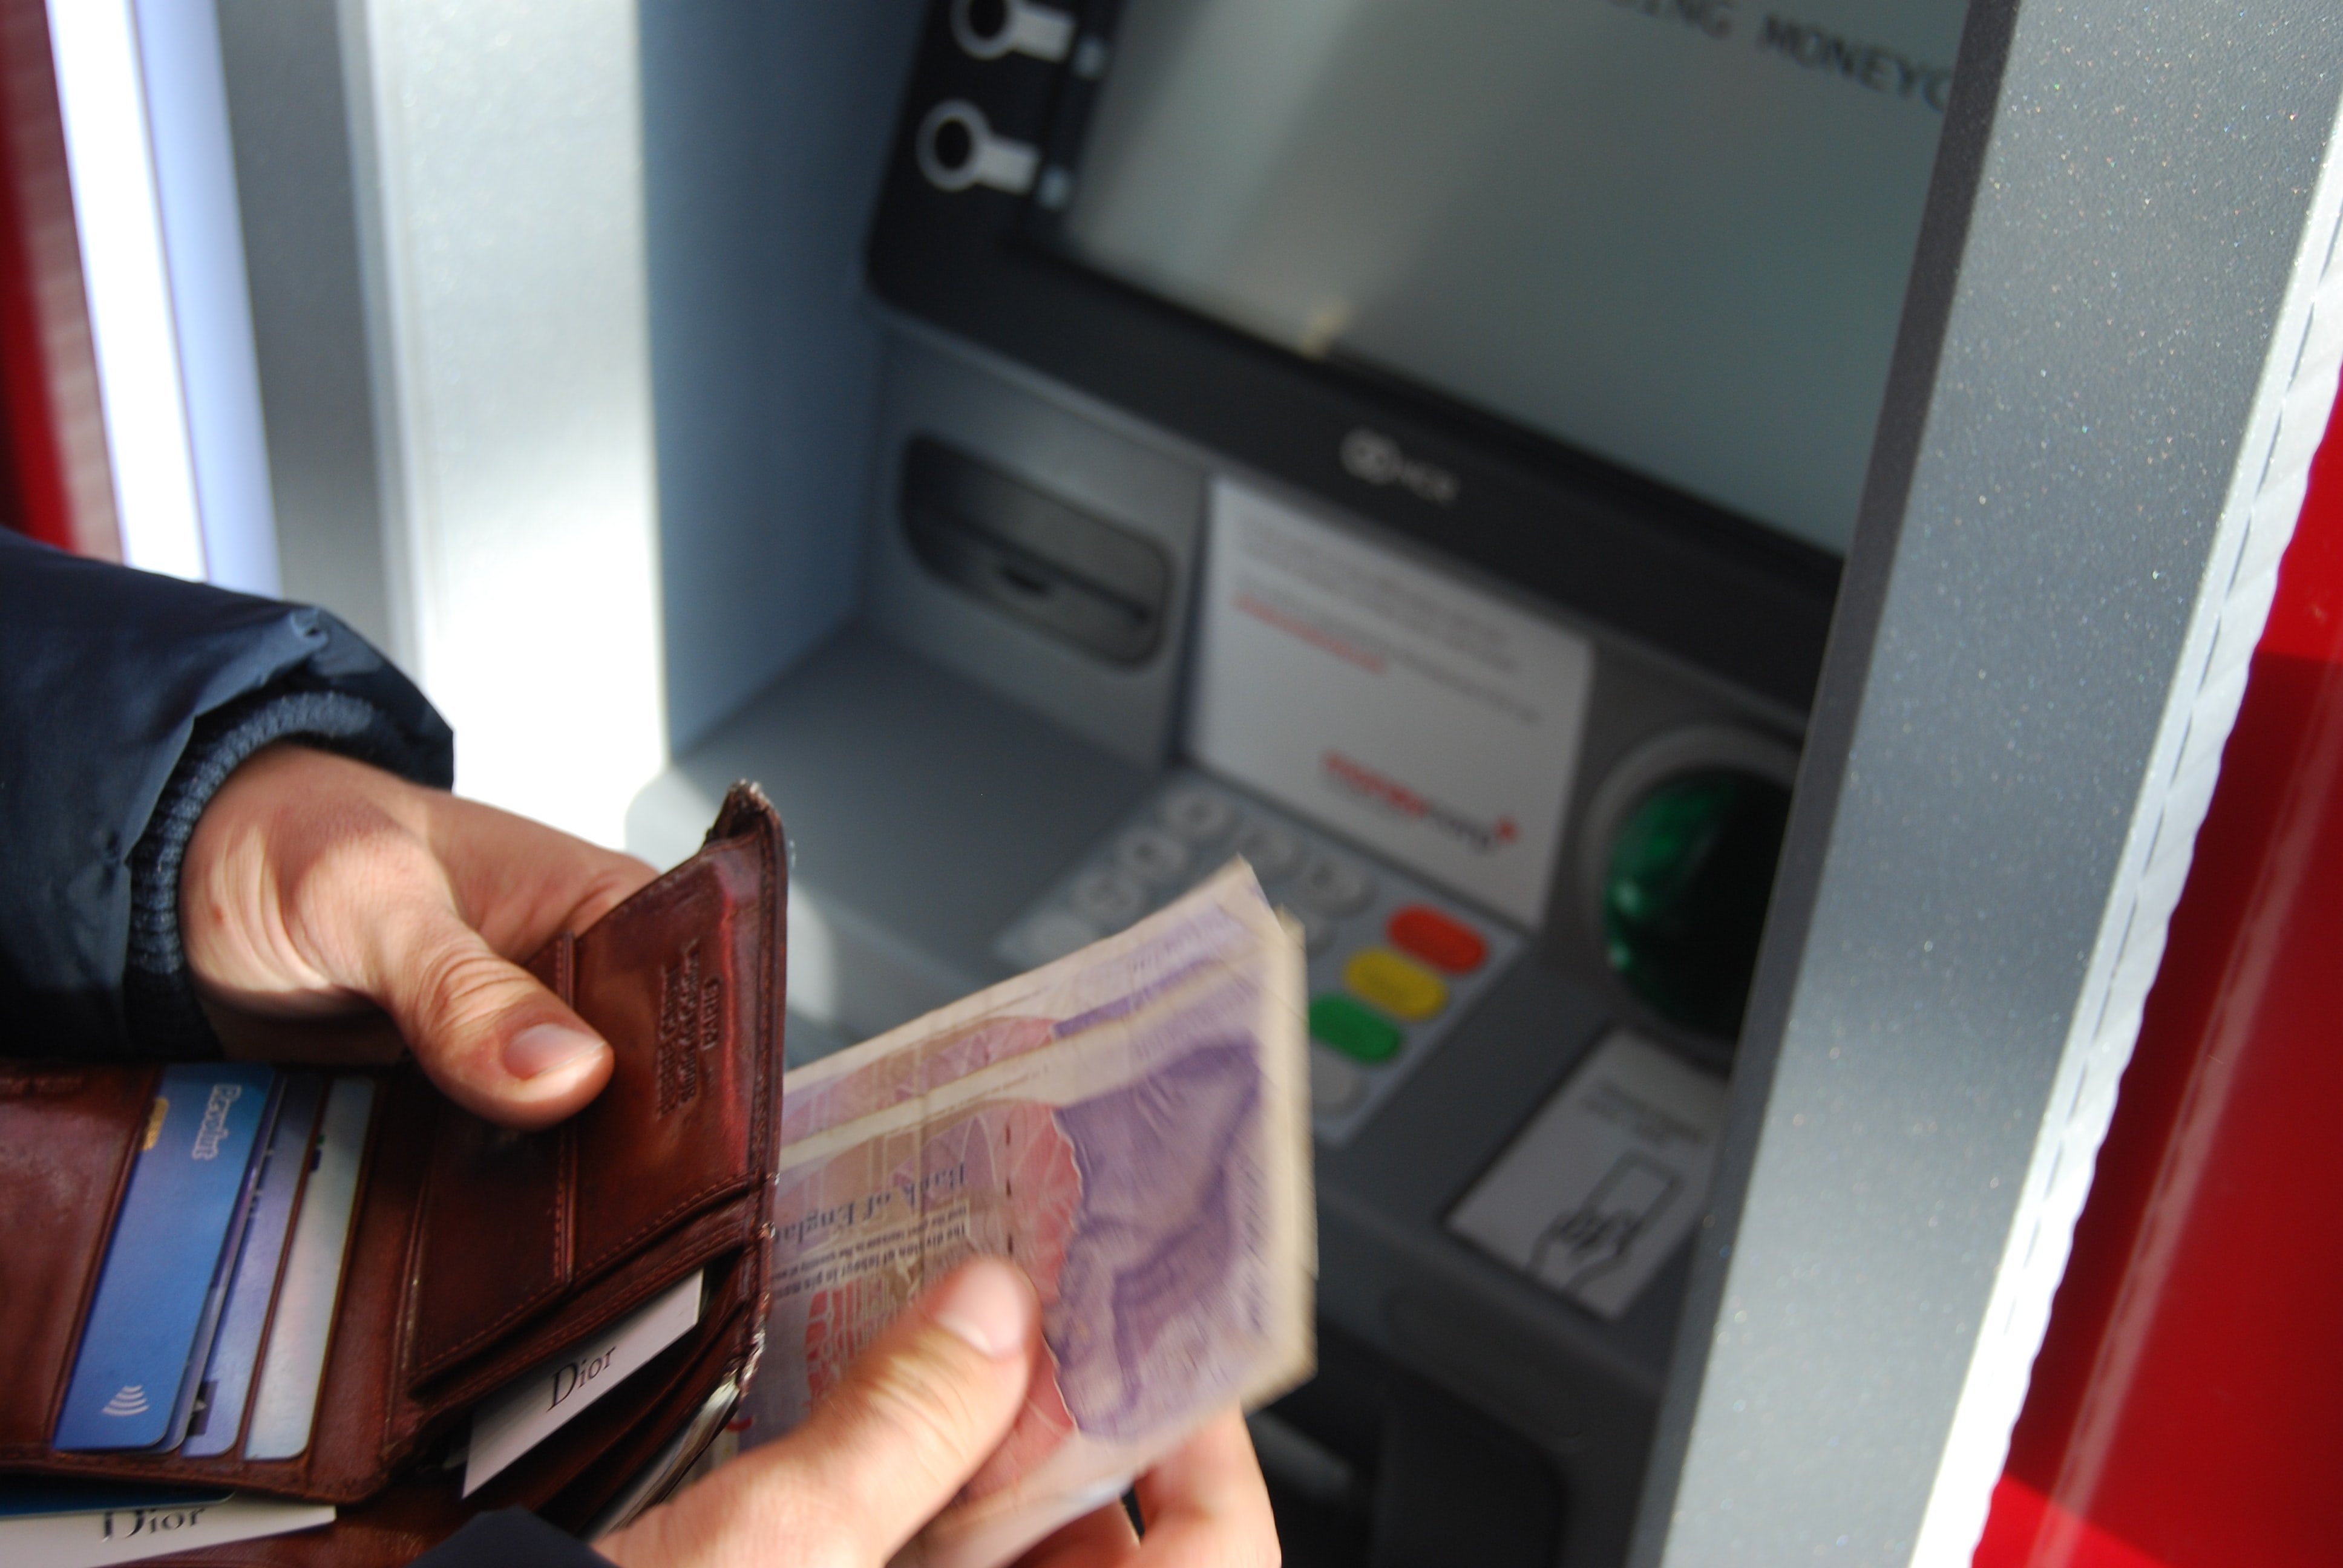 Banking with a visual impairment